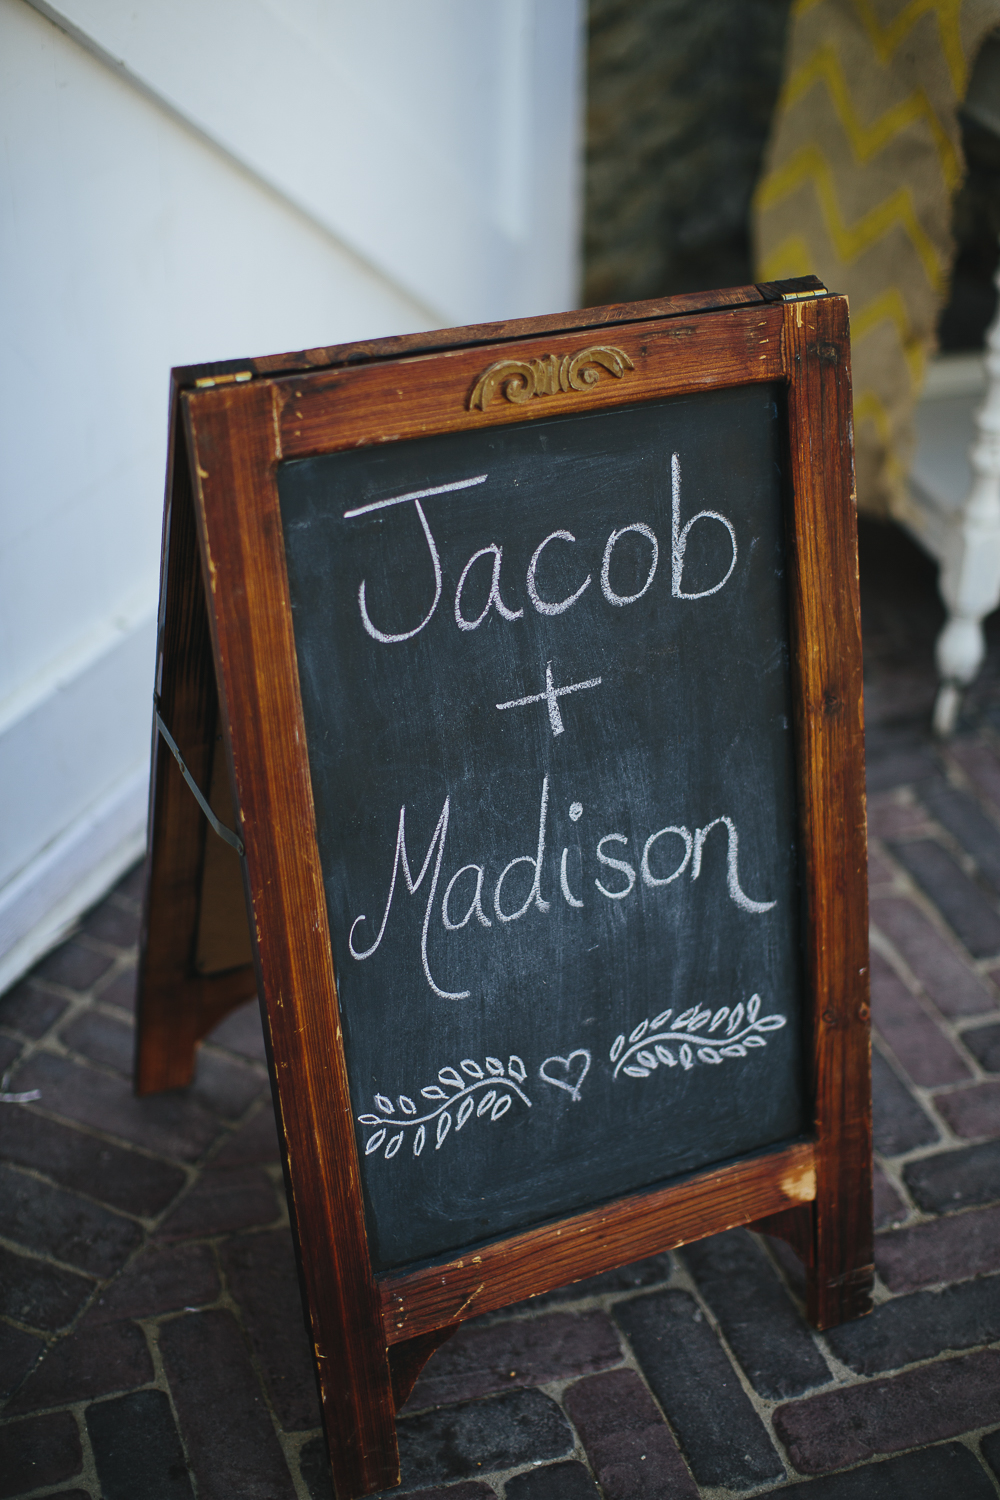 Madison and jacob-4.jpg